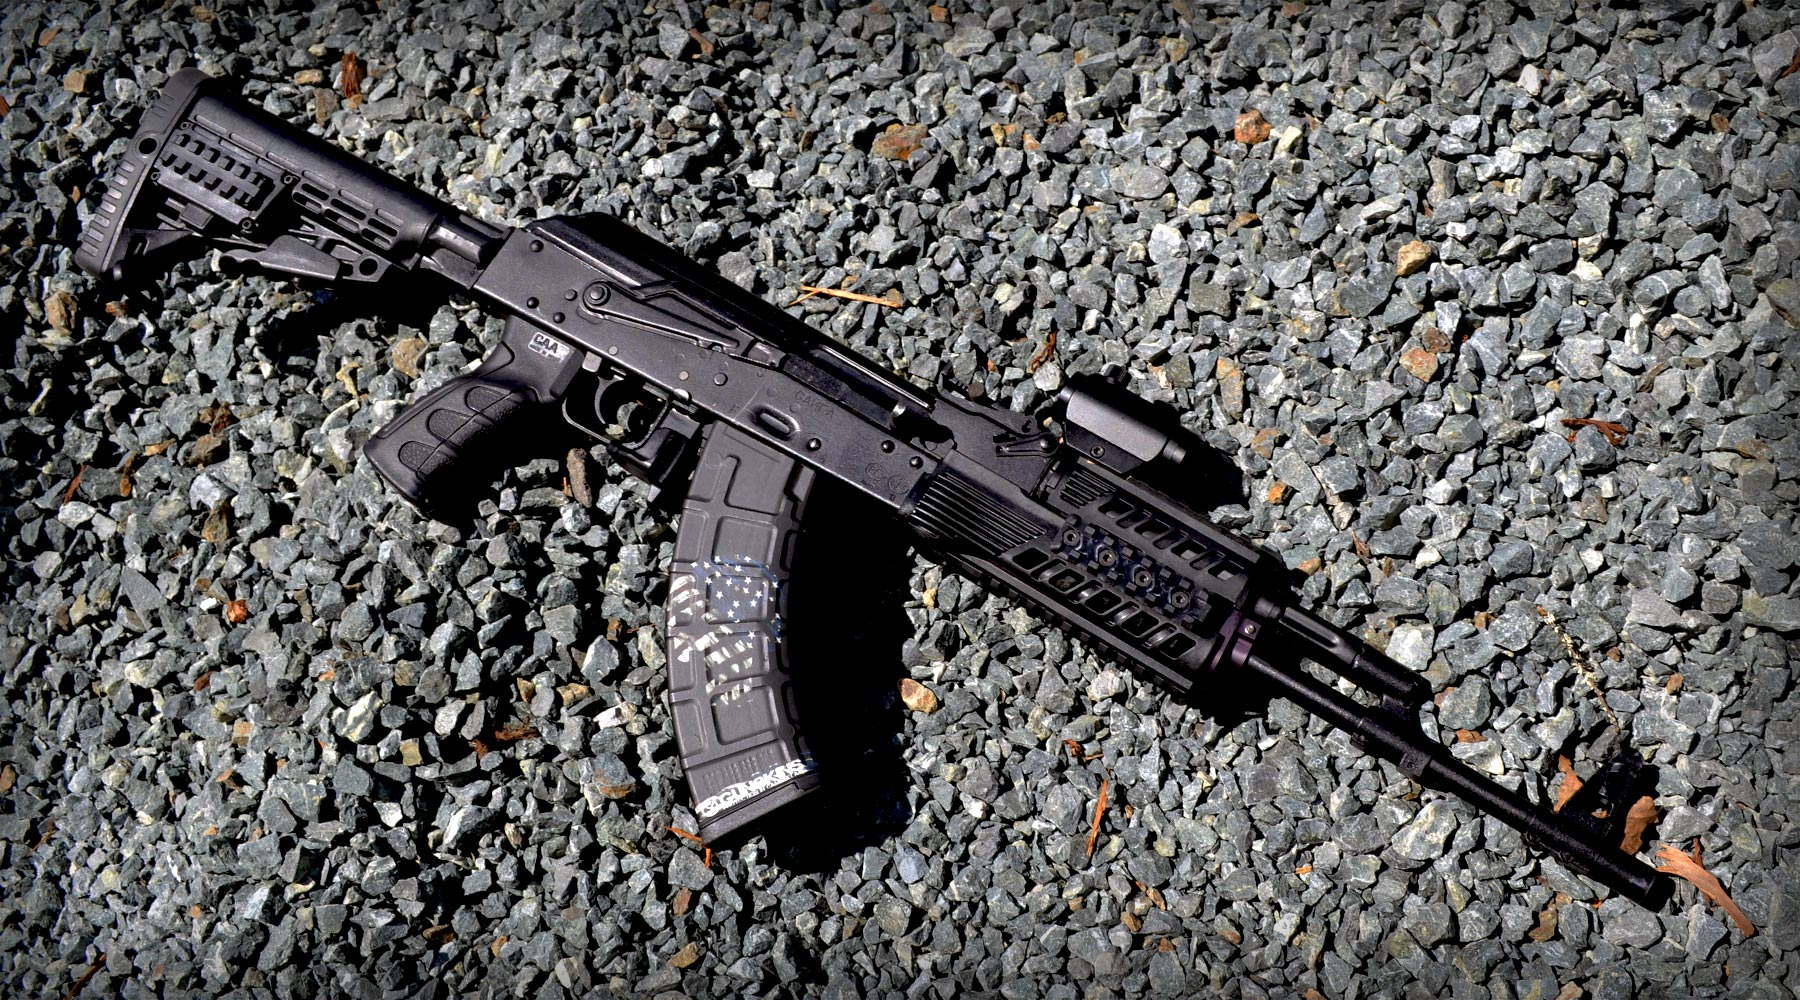 Ak ak 47 for sale by owner - Ak 47 Rifle Kalashnikov